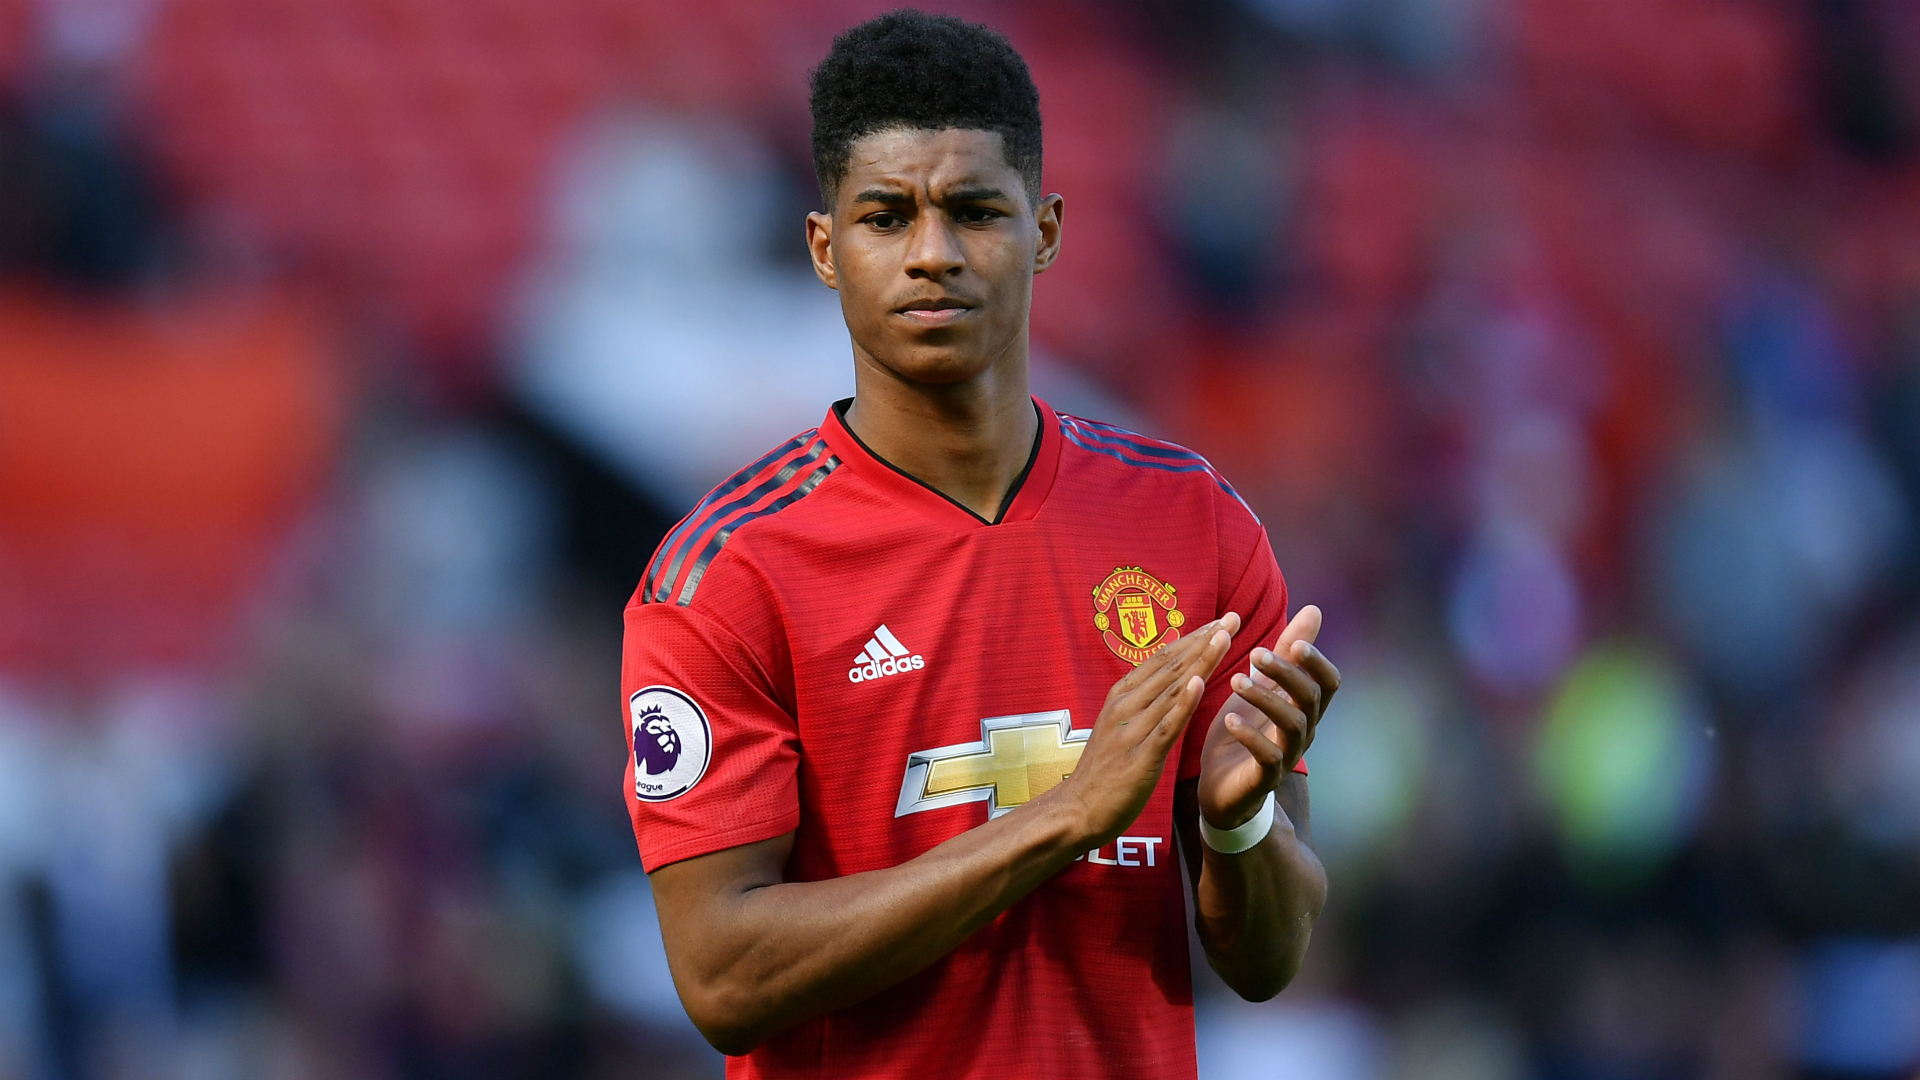 Rashford 'hurt every day' by Manchester United's failure to challenge